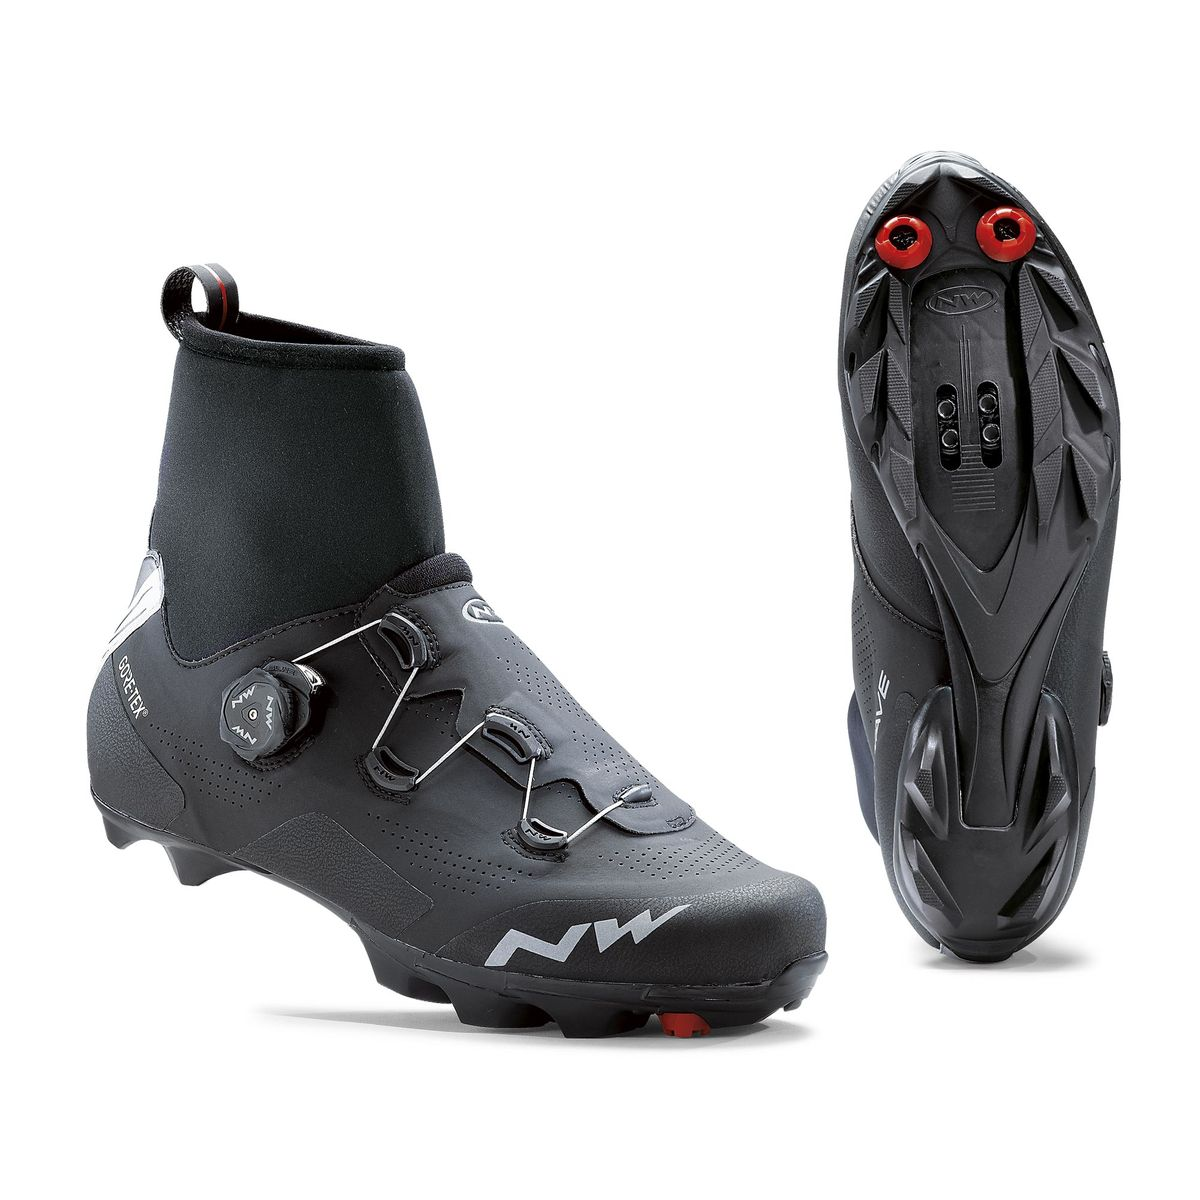 RAPTOR GTX MTB winter shoes